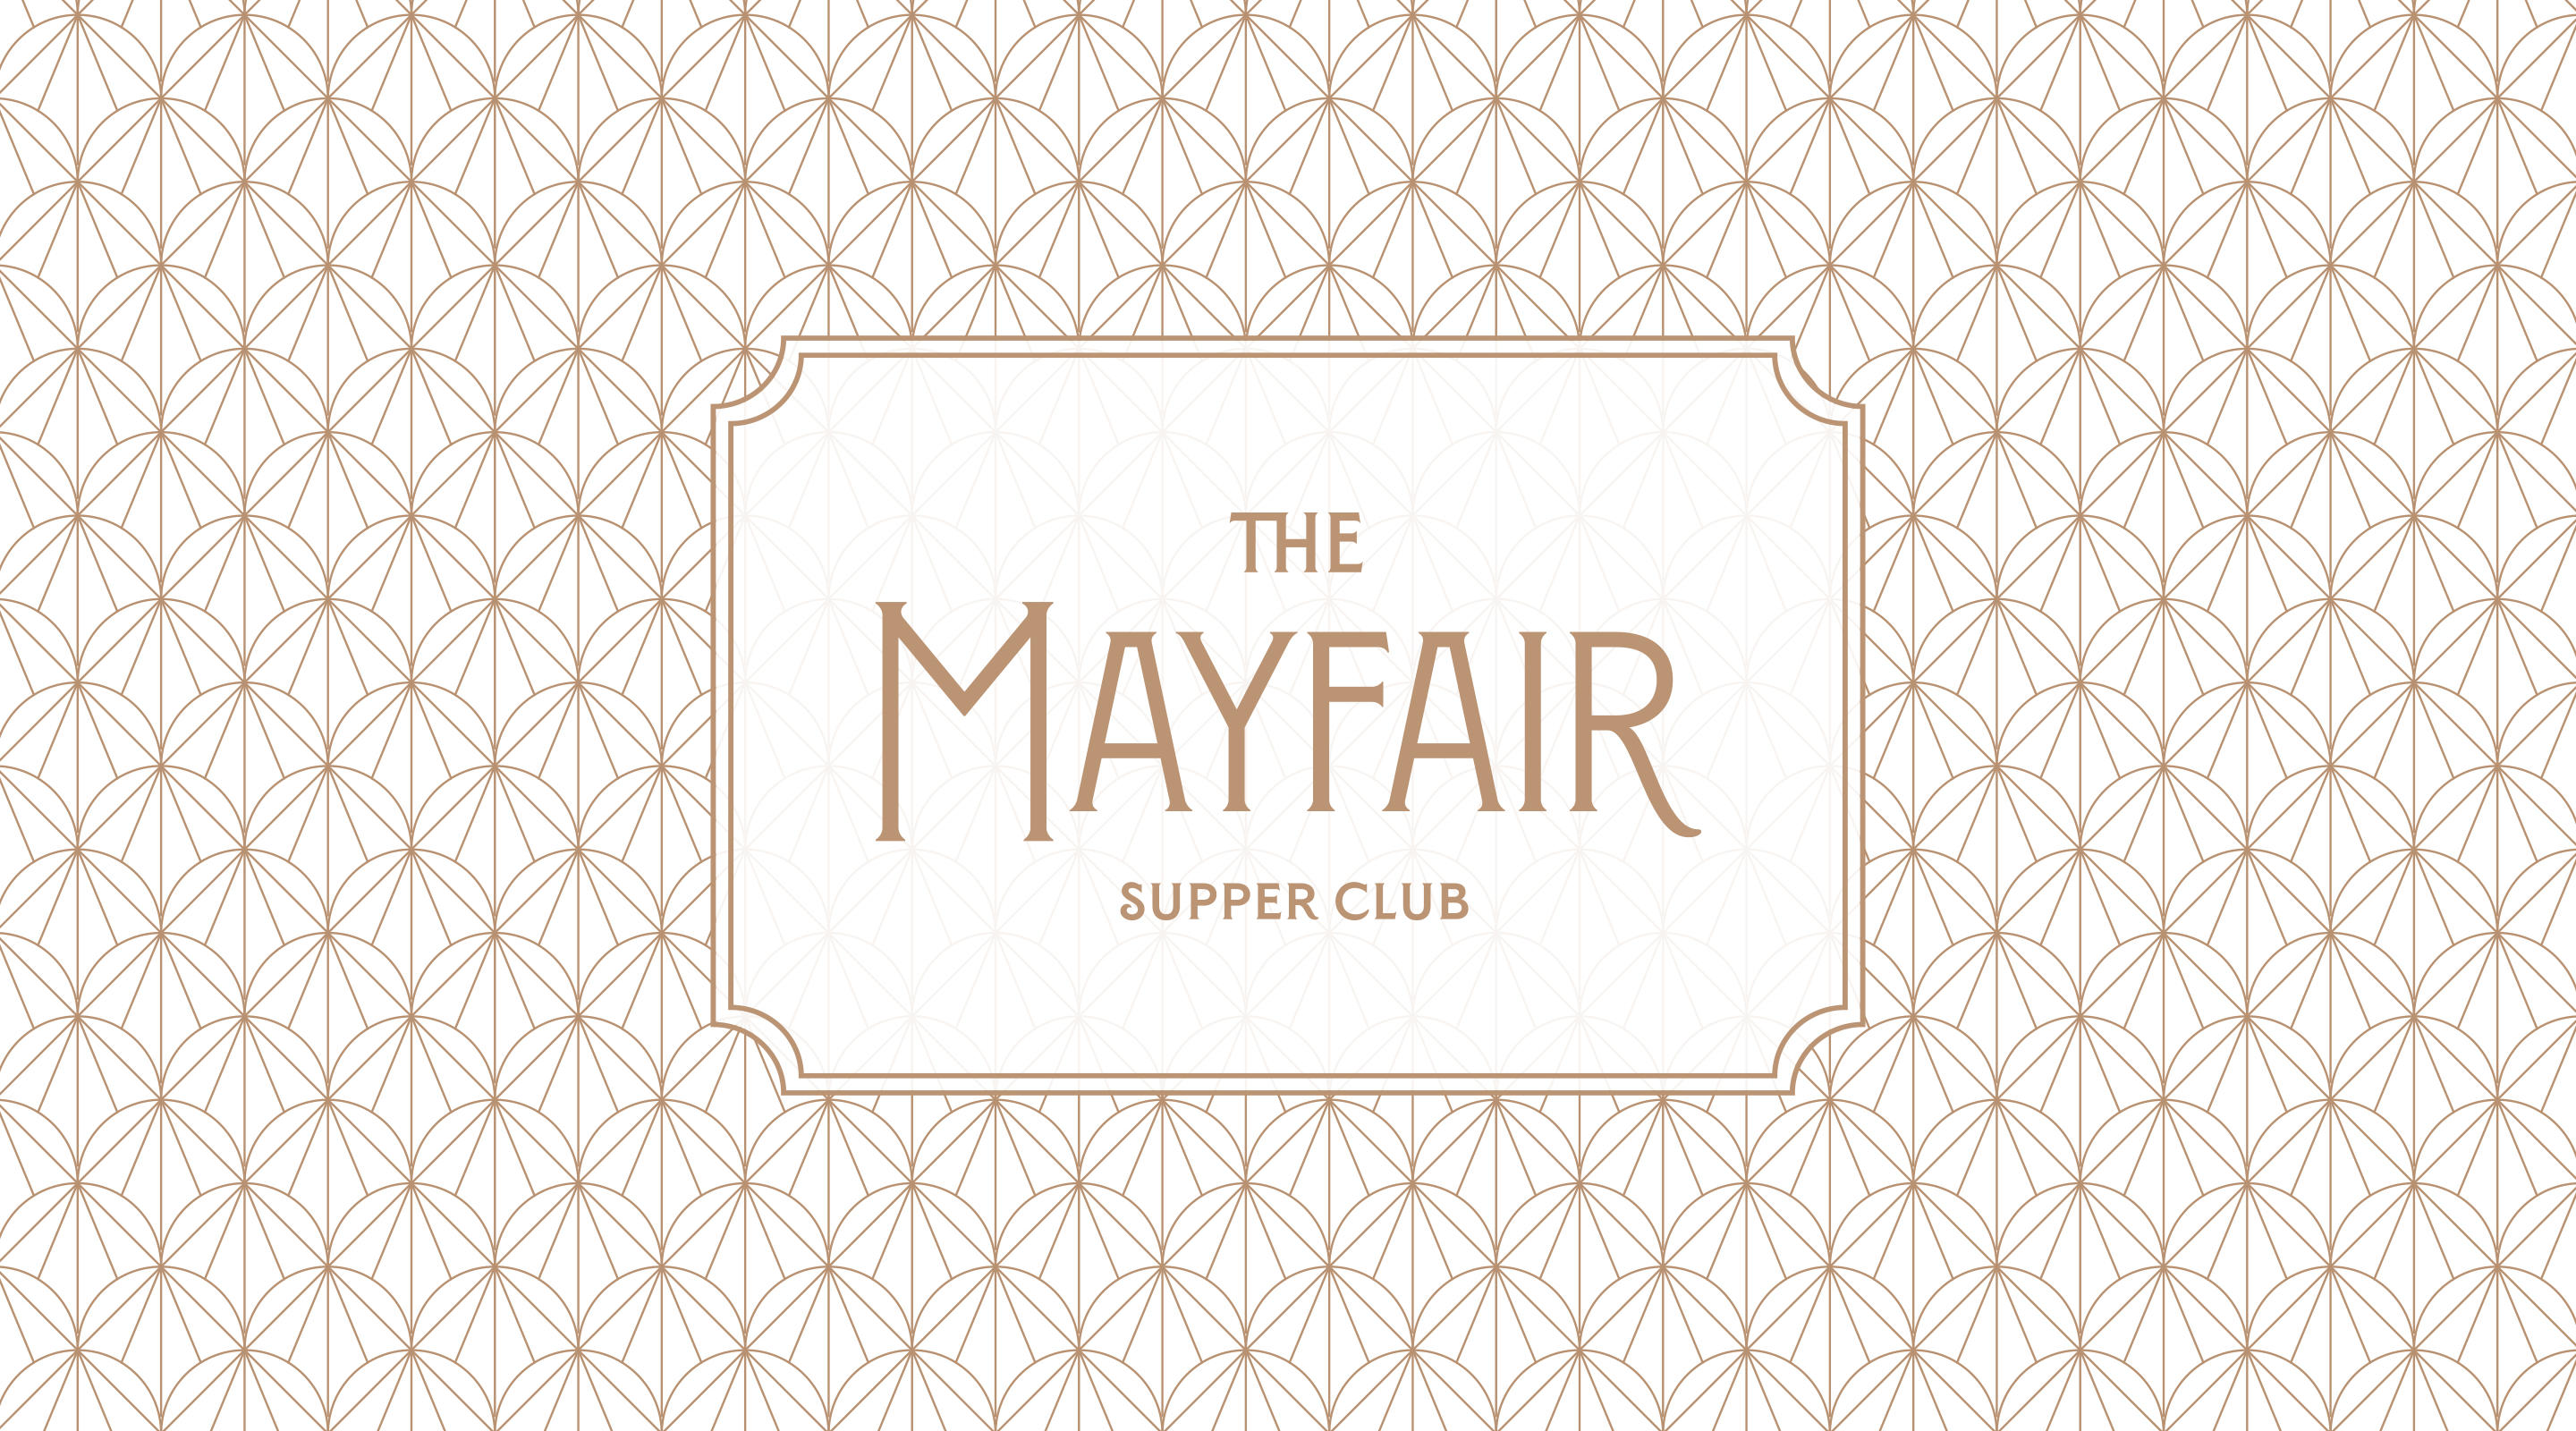 The Mayfair Supper Club logo.